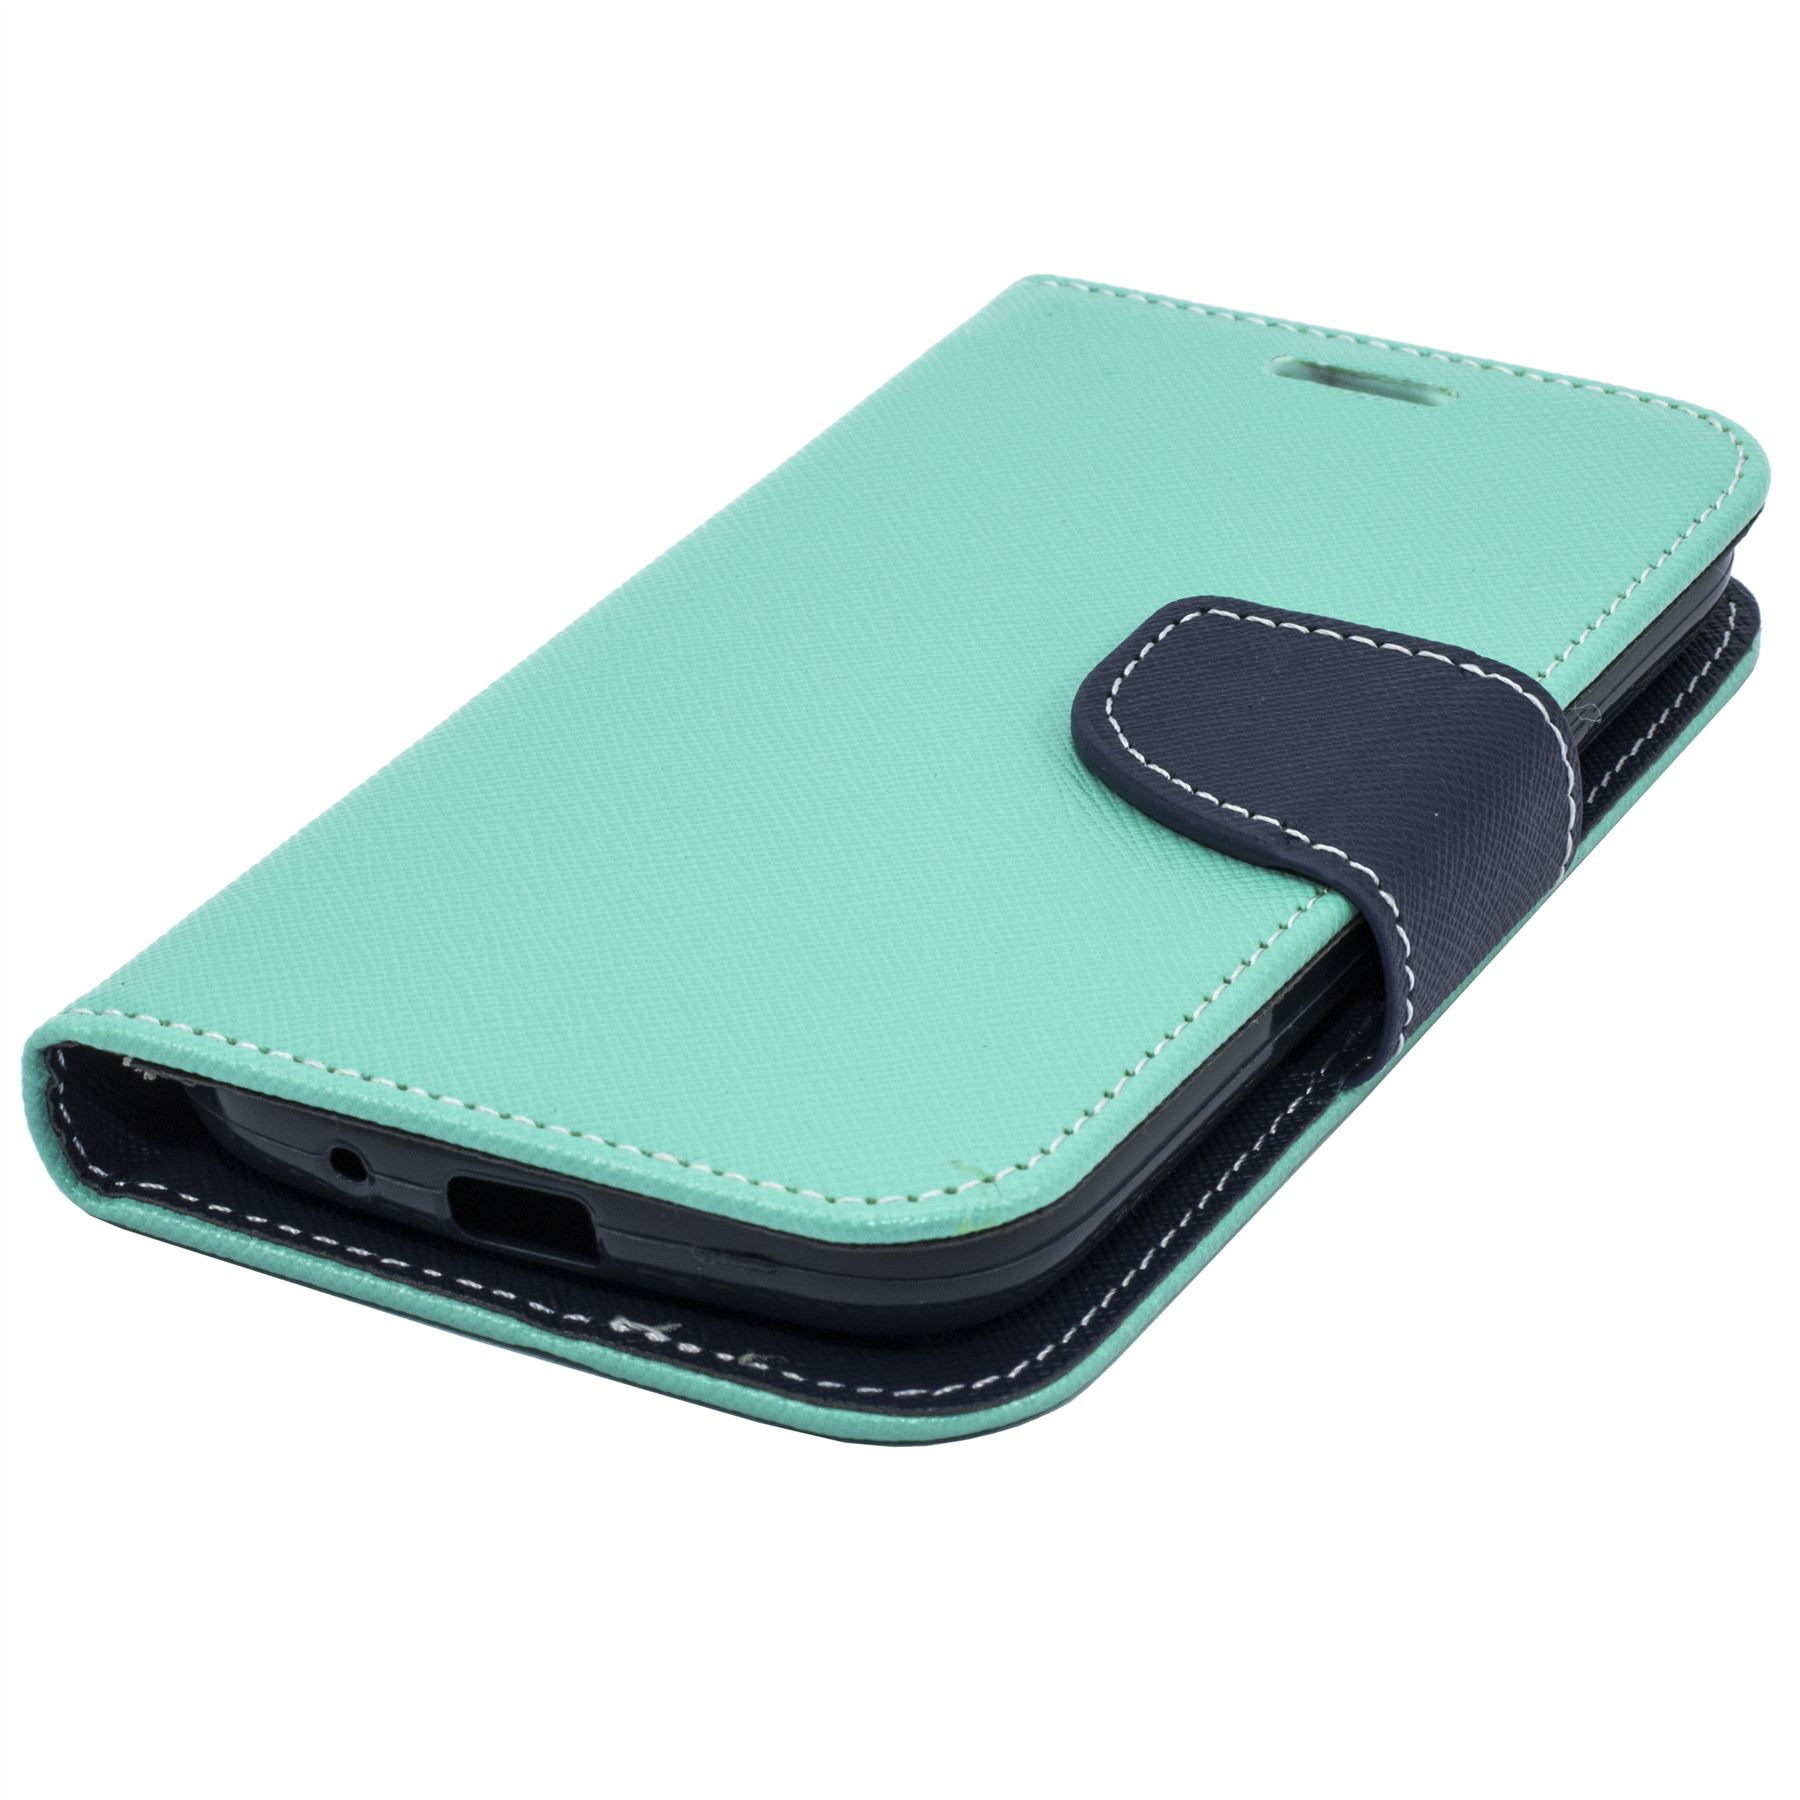 ... Case Flip cover with stand / Silicone phone holder for Samsung : eBay